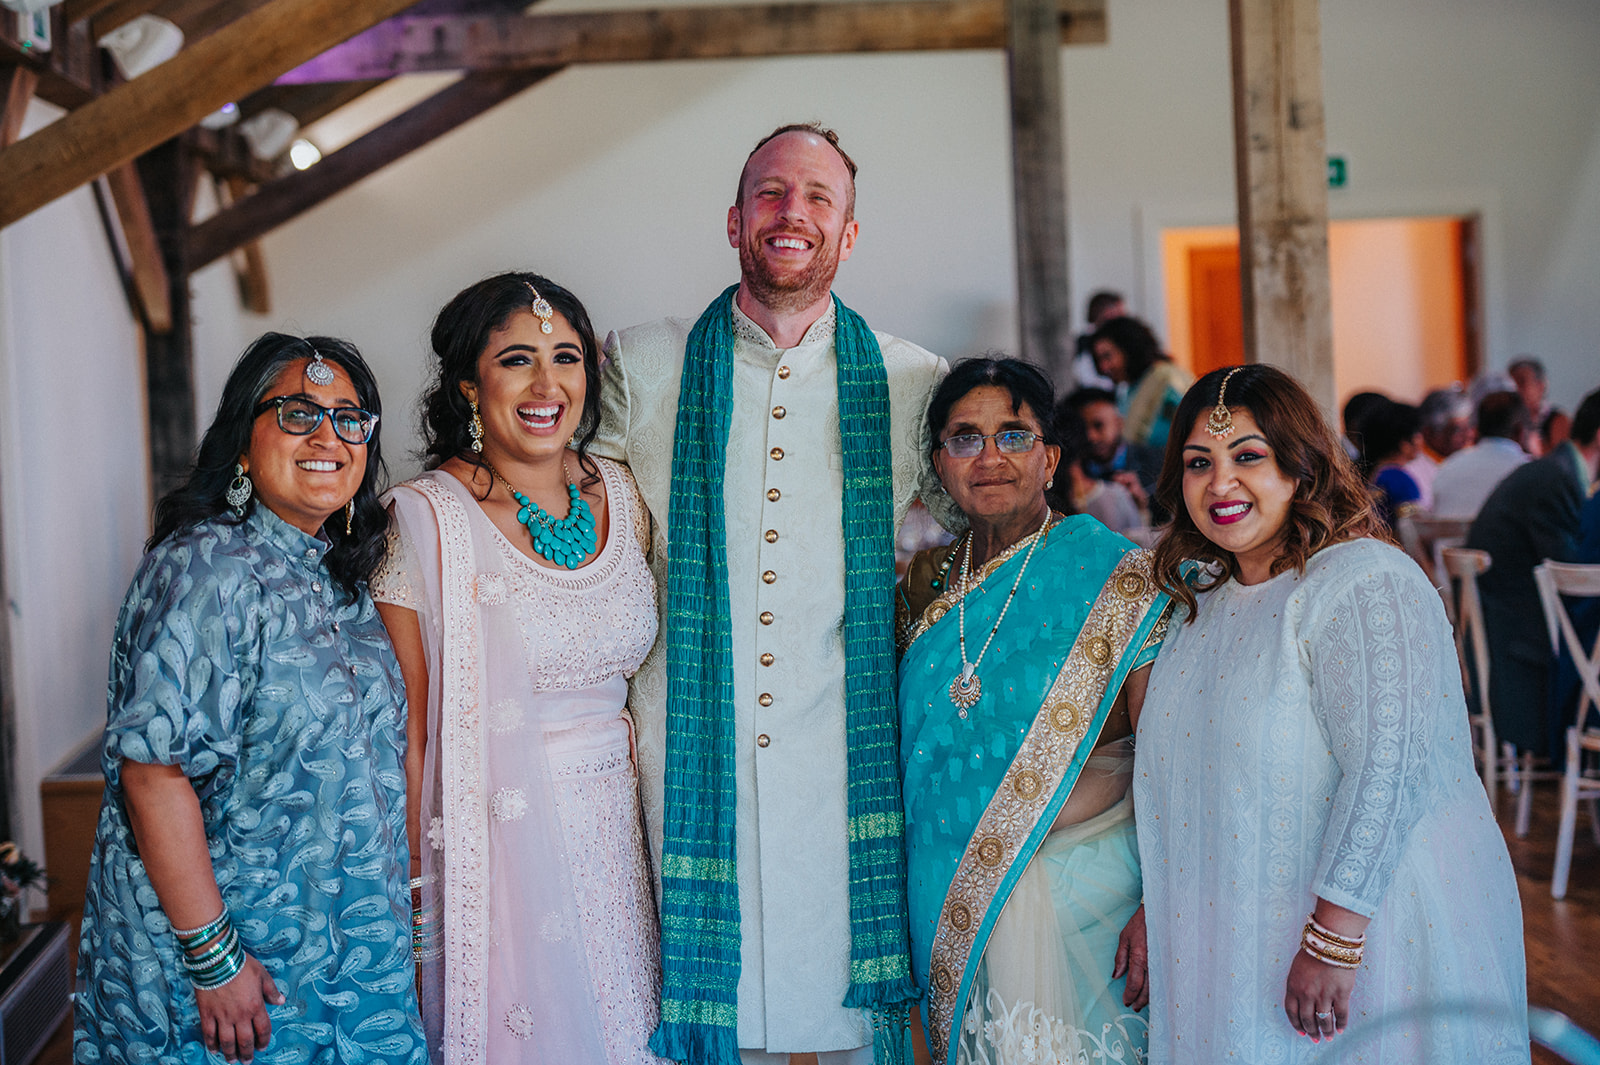 Fusion Wedding- Michael Briggs Photography- Multifaith Wedding- English Indian Wedding- Unconventional Wedding- Wedding Photography- Unique Wedding Ideas- Indian Bridalwear- Unique Bridalwear- Quirky Wedding- Wedding Planning